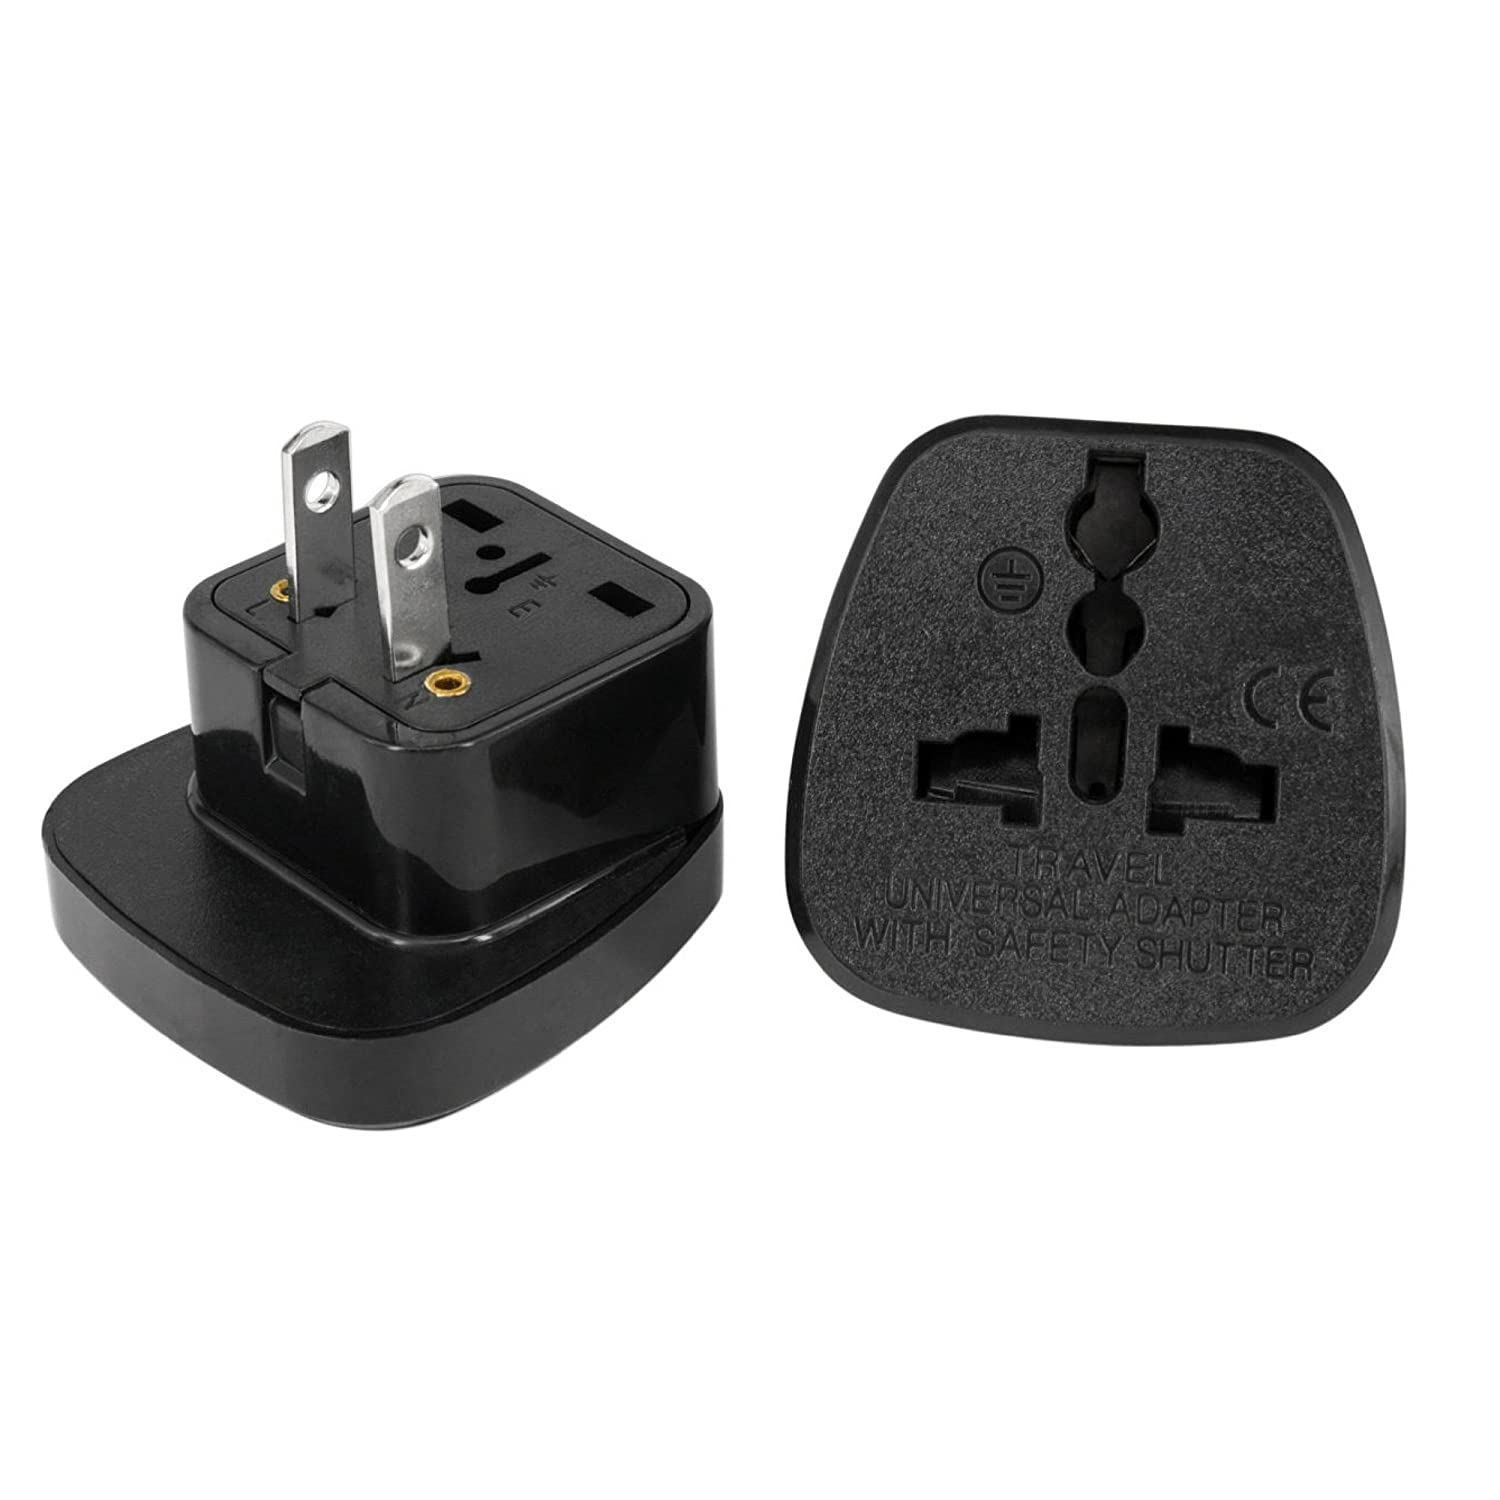 Mexico Plug Adapter by aPlug – Travel Adaptor Mexico – Mexico Plug Adapter UK. Super Reliable | Powerful | Lightweight | Pack of 2. SS-6